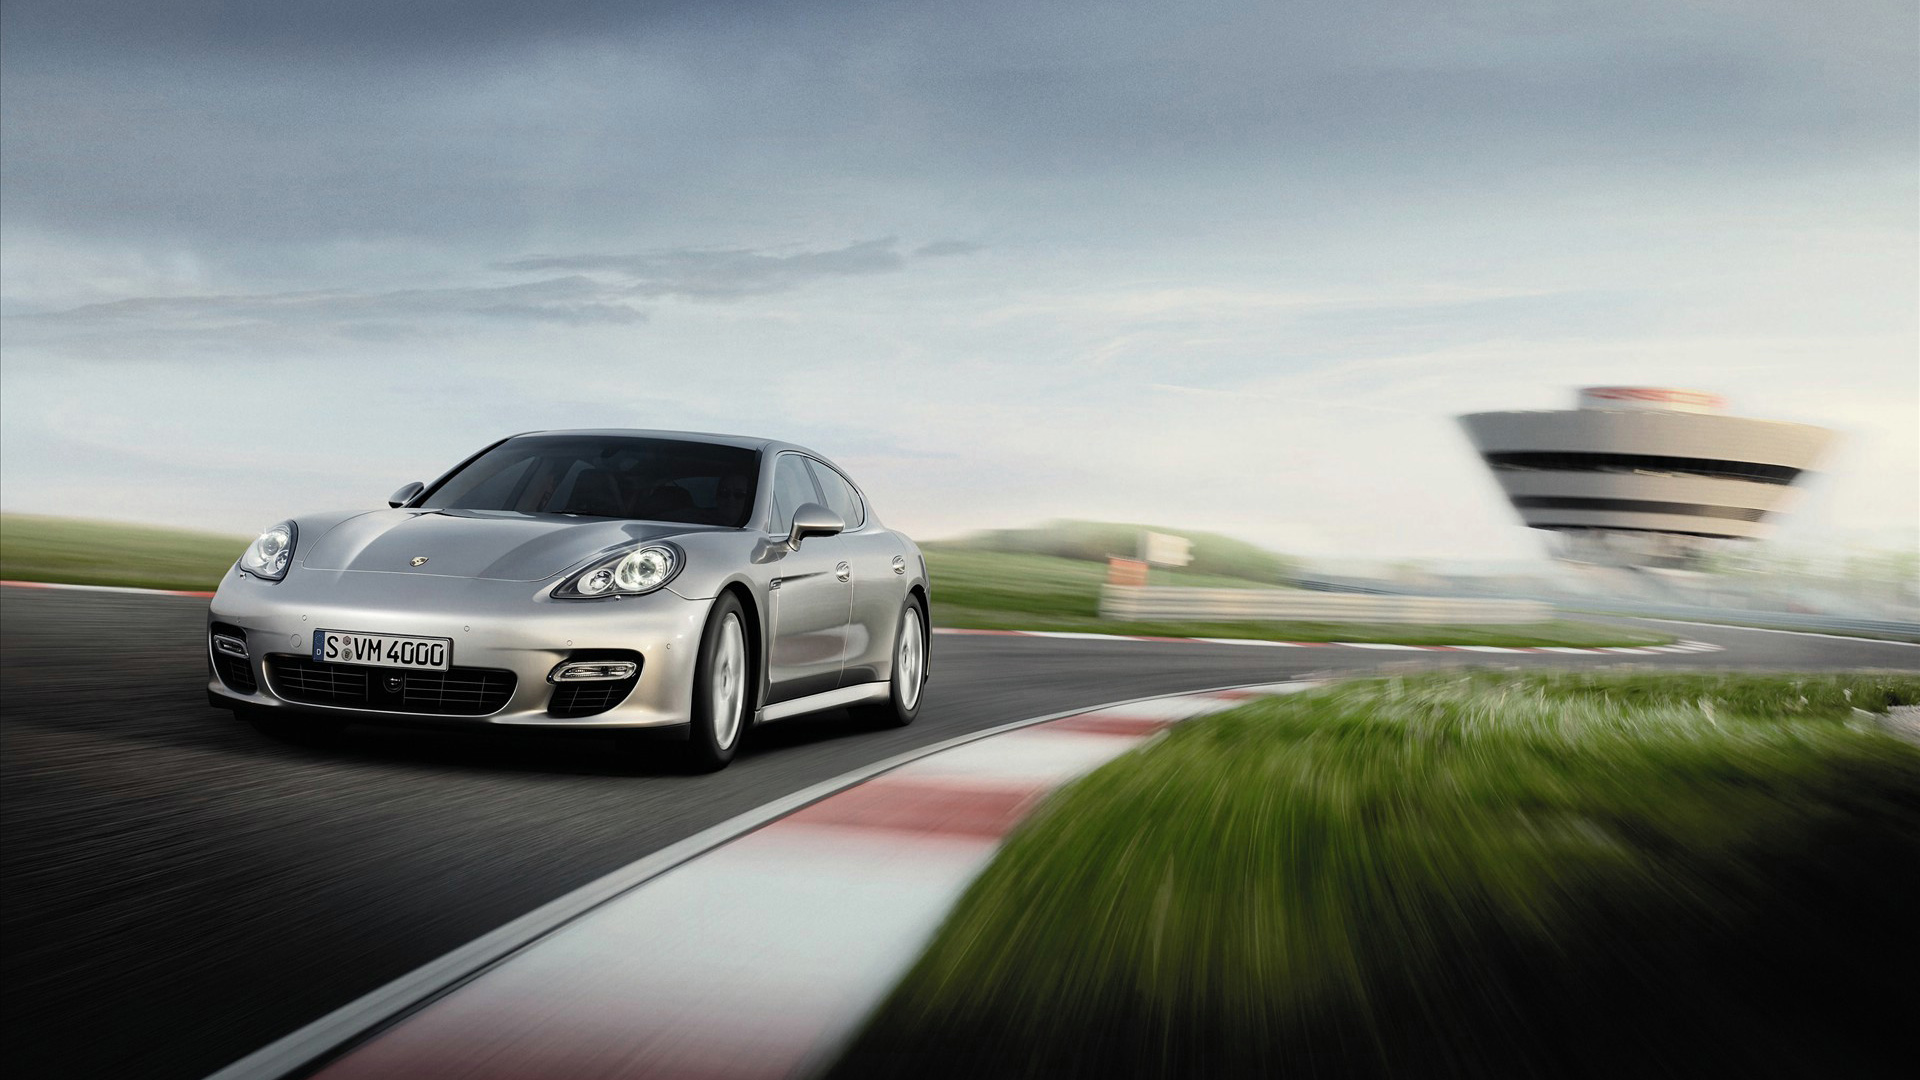 Porsche Panamera Wallpaper Hd wallpaper   557359 1920x1080